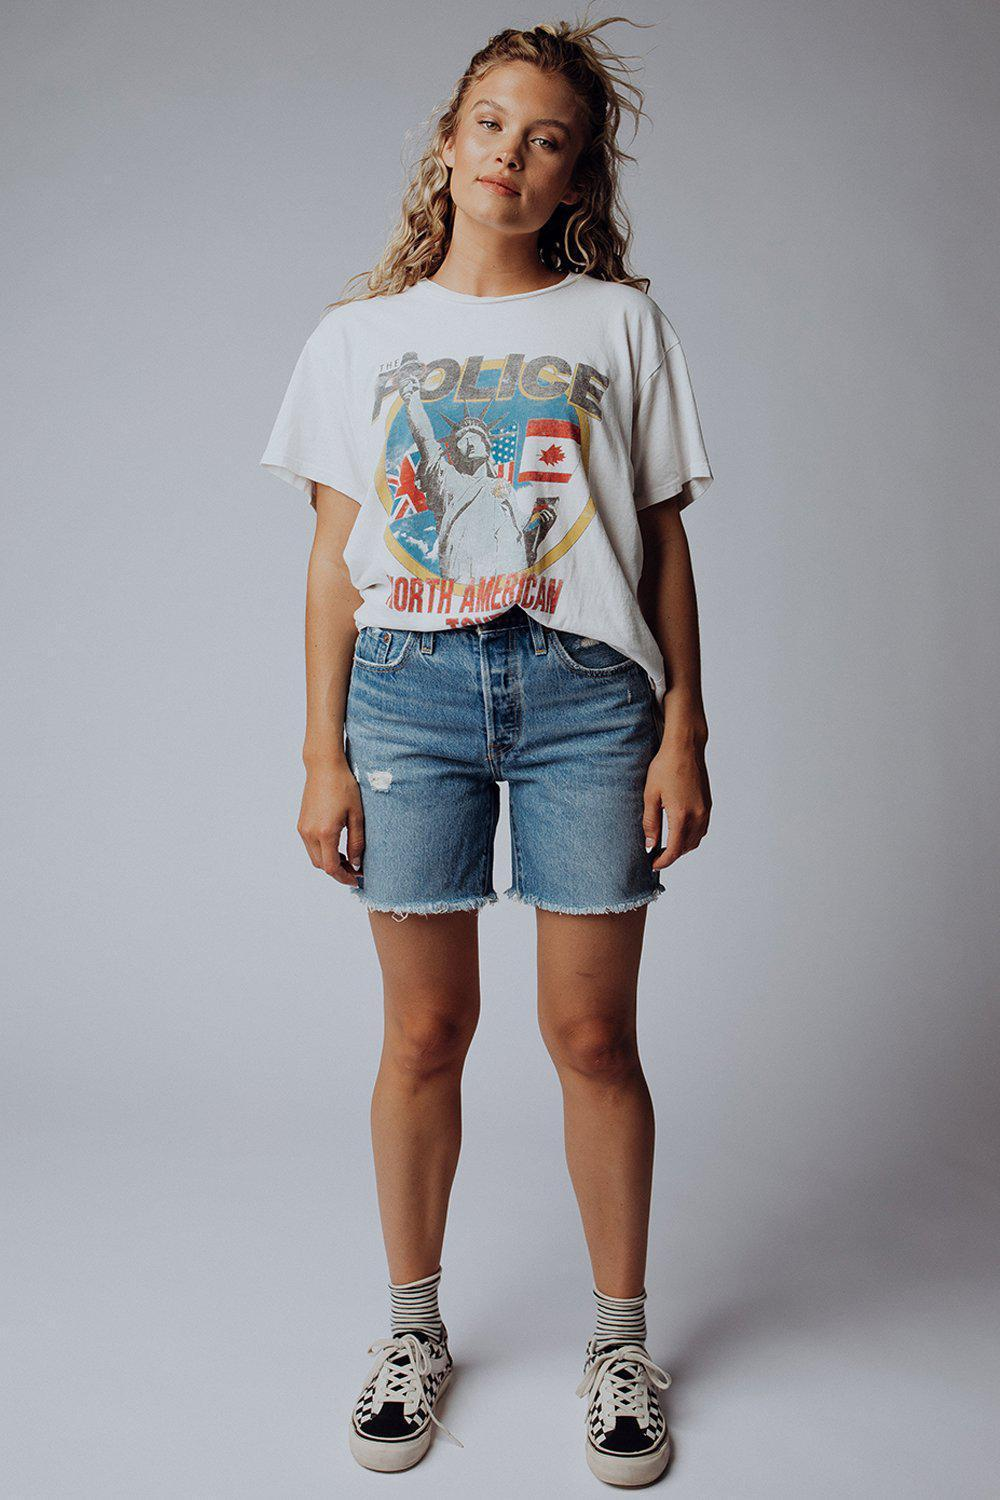 best_seller, Levi's 501 Mid Thigh Cut Off Shorts in Luxor Street - FINAL SALE, Bottom, women's clothing, dresses, skirts, coats, jackets, shoes, boots, tops, tee shirts, jeans, free people, levi's, rollas, jumpsuits, bottoms, tops, sweaters, pullovers, pants, shorts, sweats,.